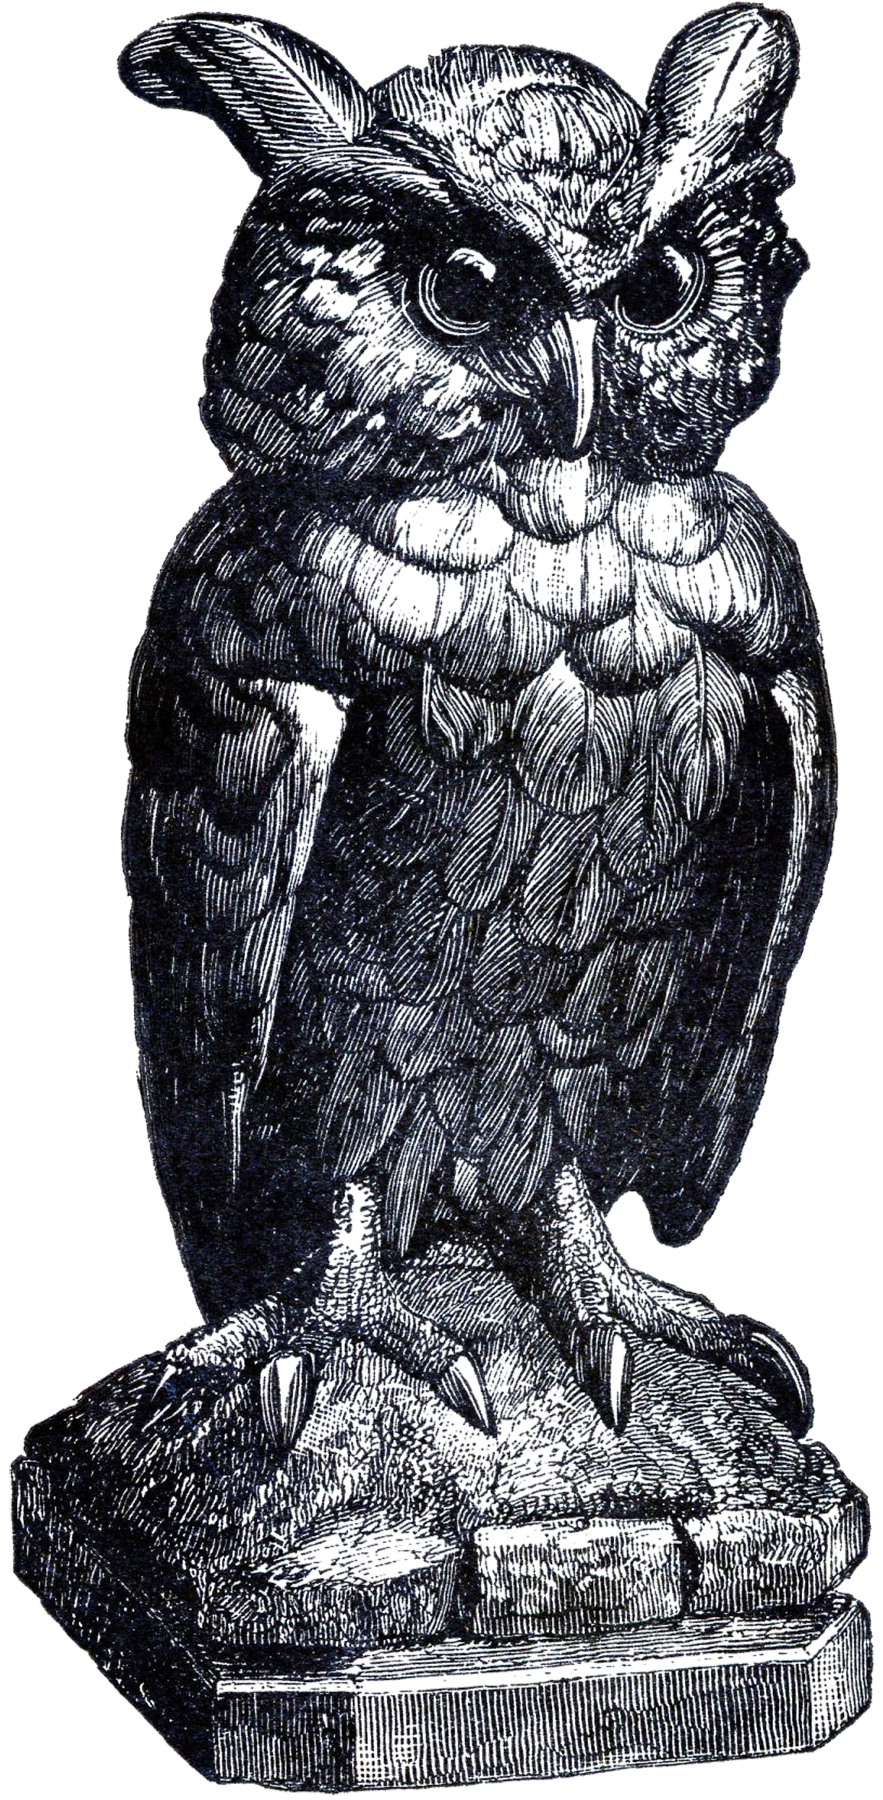 spooky owl statue image the graphics fairy